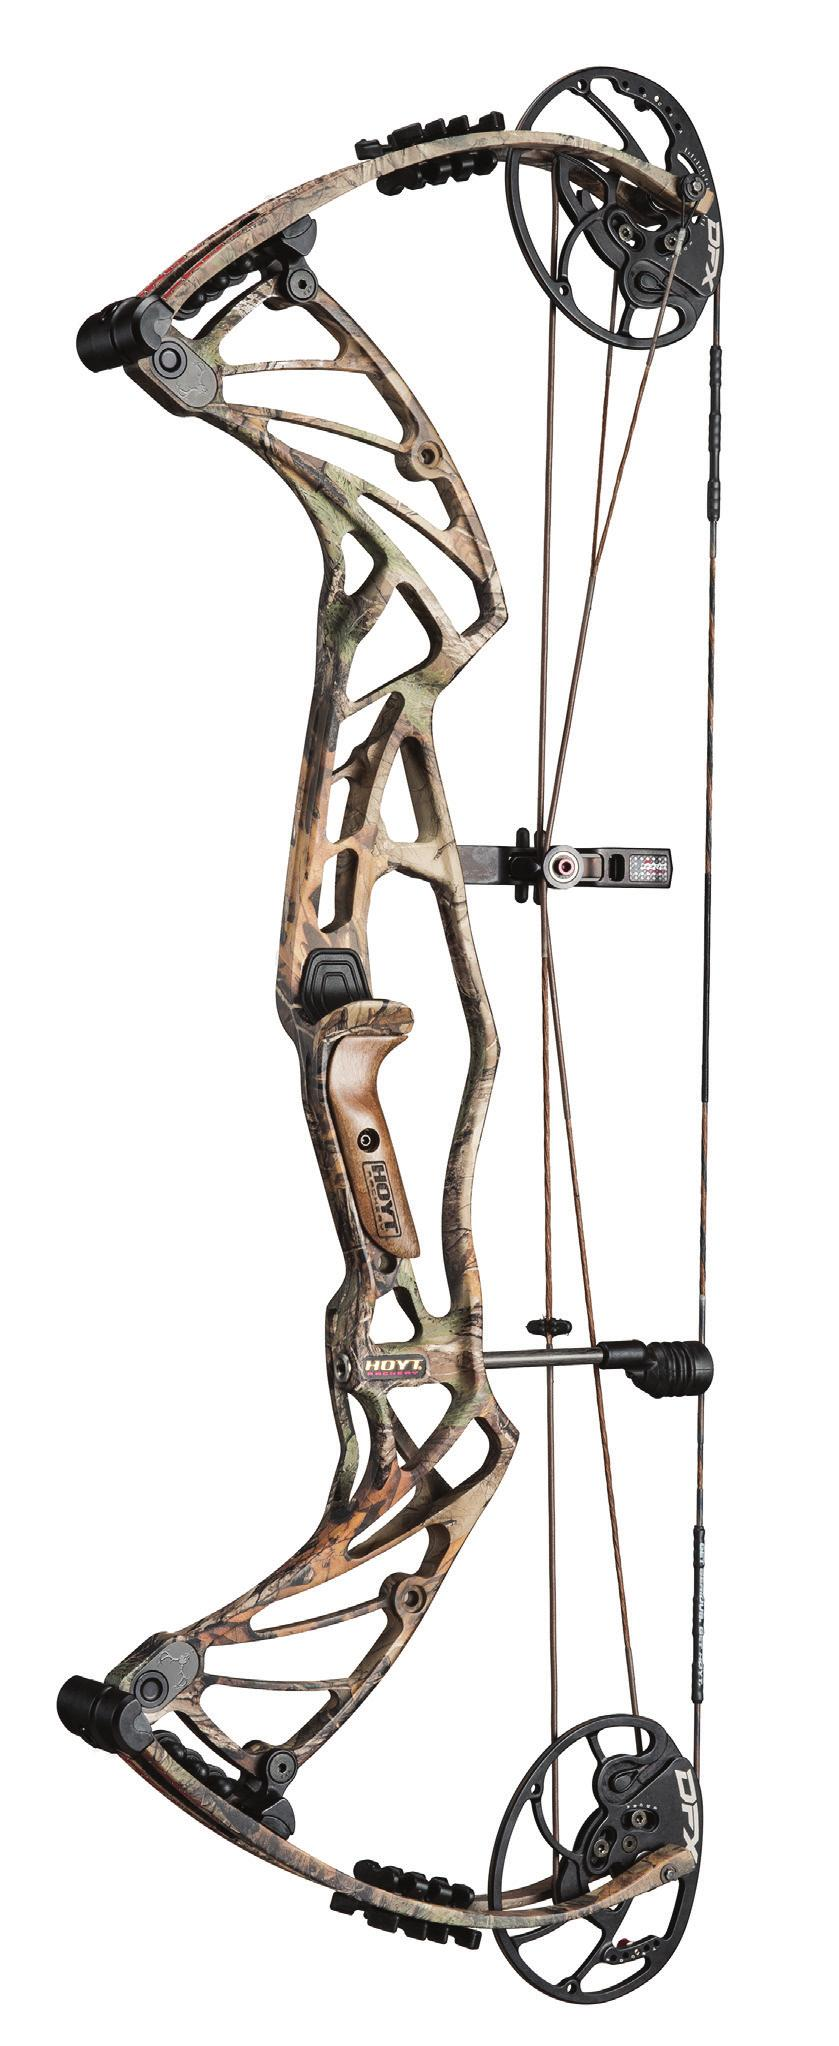 COMPOUND BOW OWNER S MANUAL - PDF